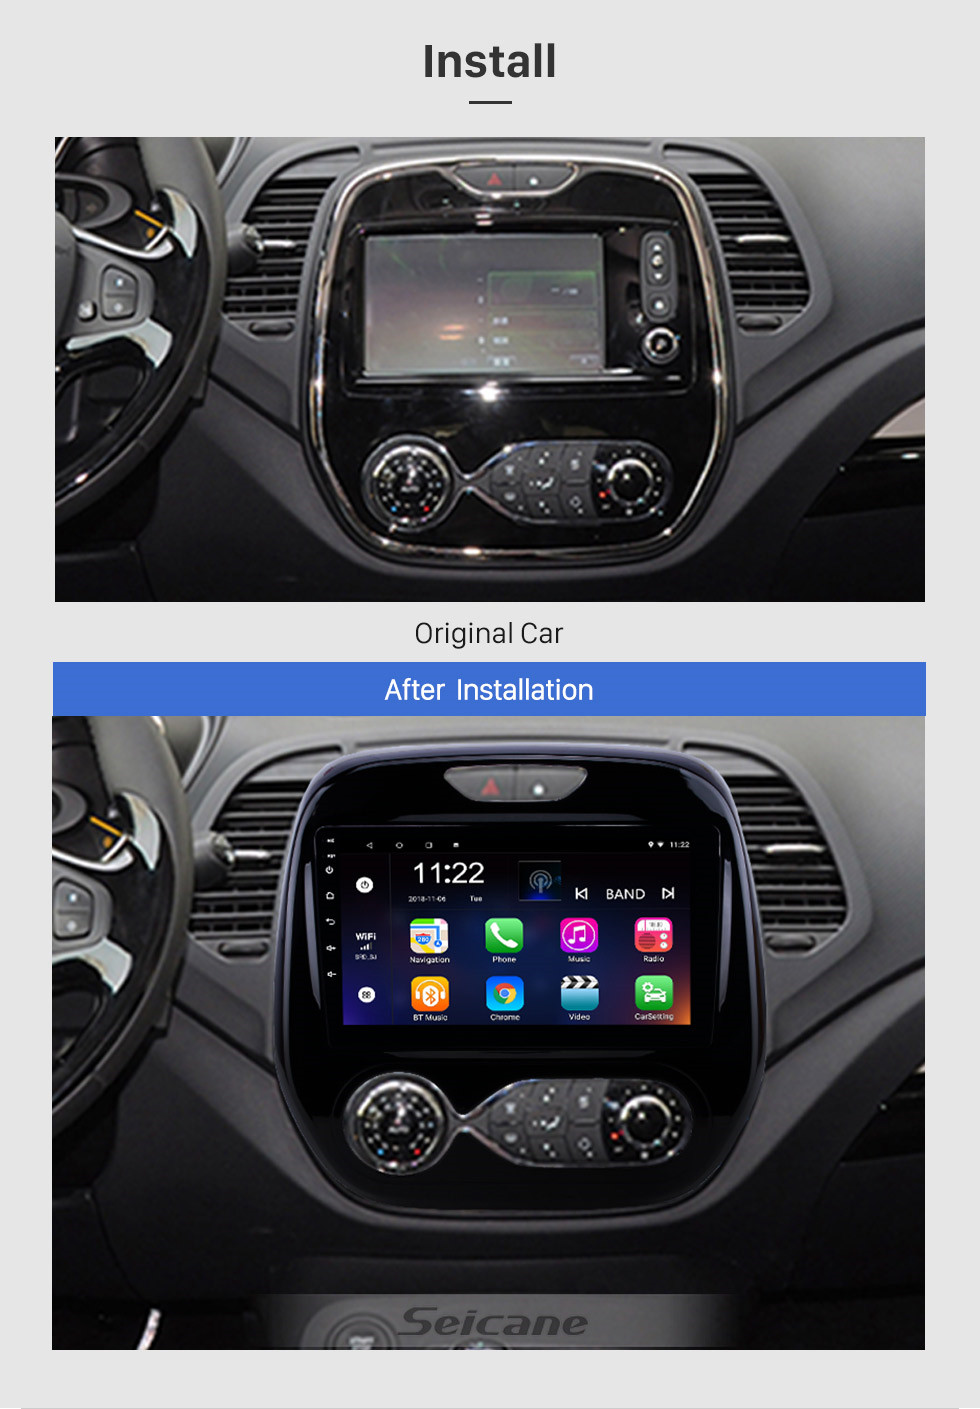 Seicane 9 Inch Android 10.0 2011-2016 Renault Captur CLIO Samsung QM3 Auto A/C GPS Navigation Car Audio System Touch Screen AM FM Radio Bluetooth Music 3G WiFi OBD2 Mirror Link AUX Backup Camera USB SD 1080P Video